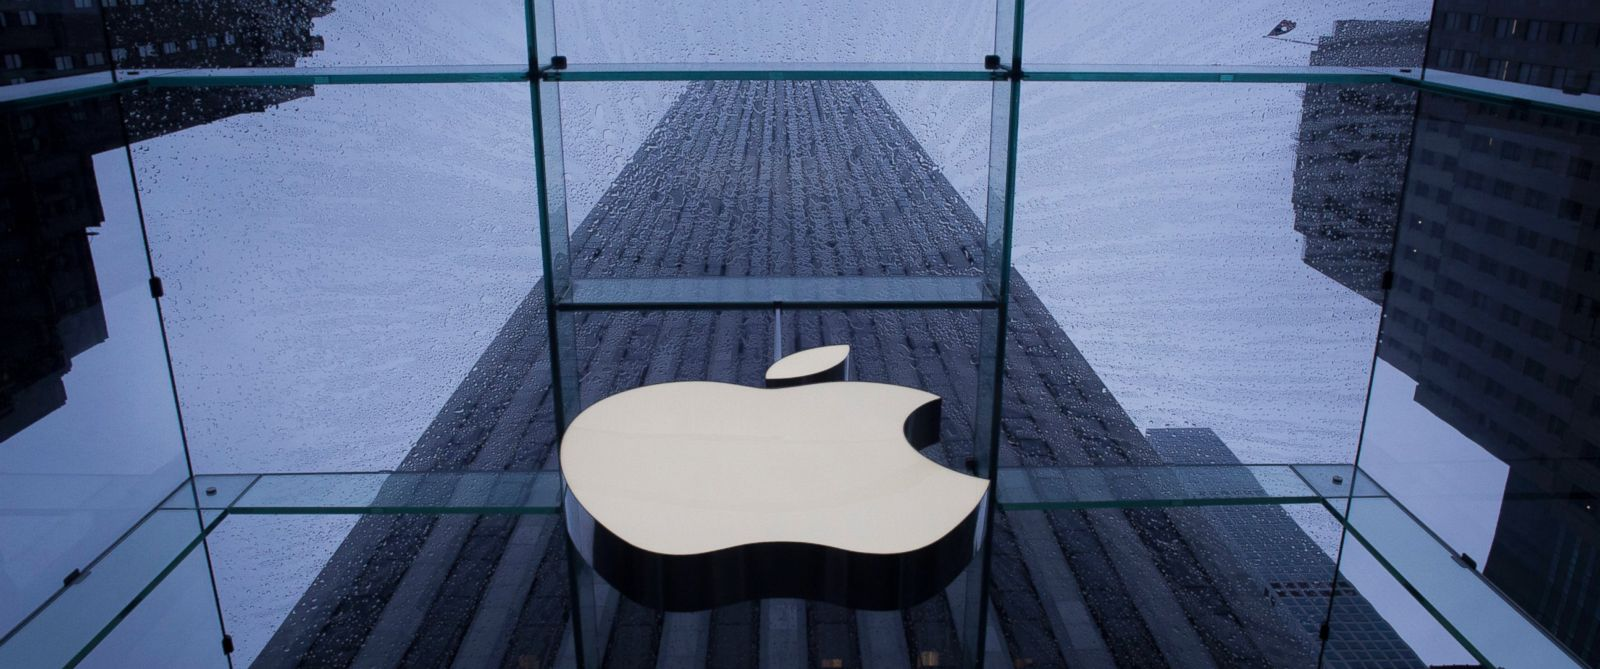 PHOTO: The Apple Inc. logo is seen at the entrance to its store in New York, NY.